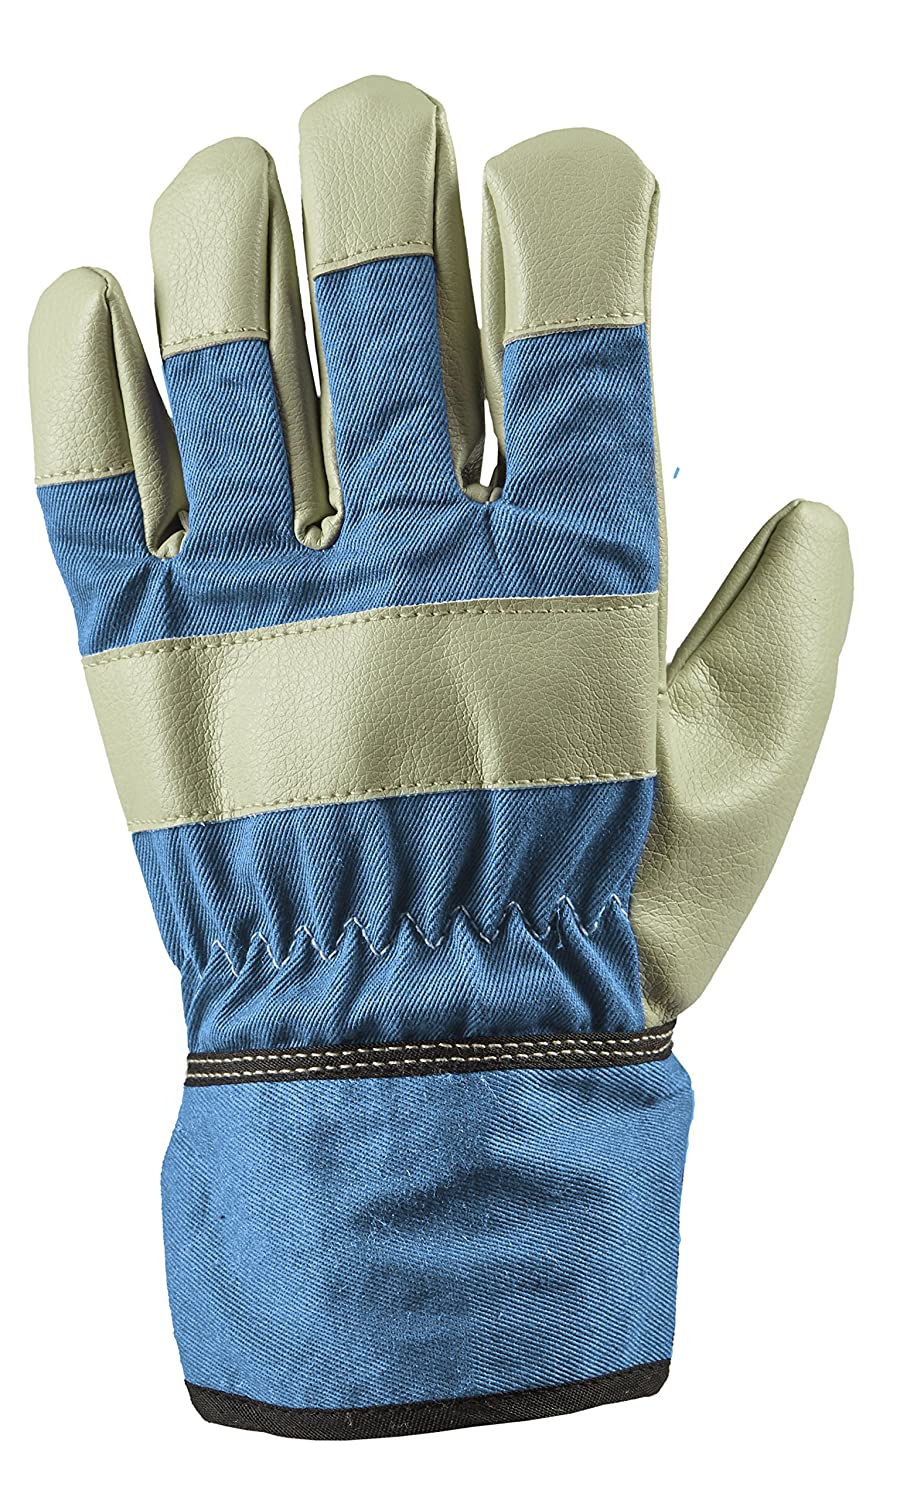 Childrens/Kids Blue Rigger Helper Gardening Gloves With Tough Grip, One Size 8-12 Years Briers